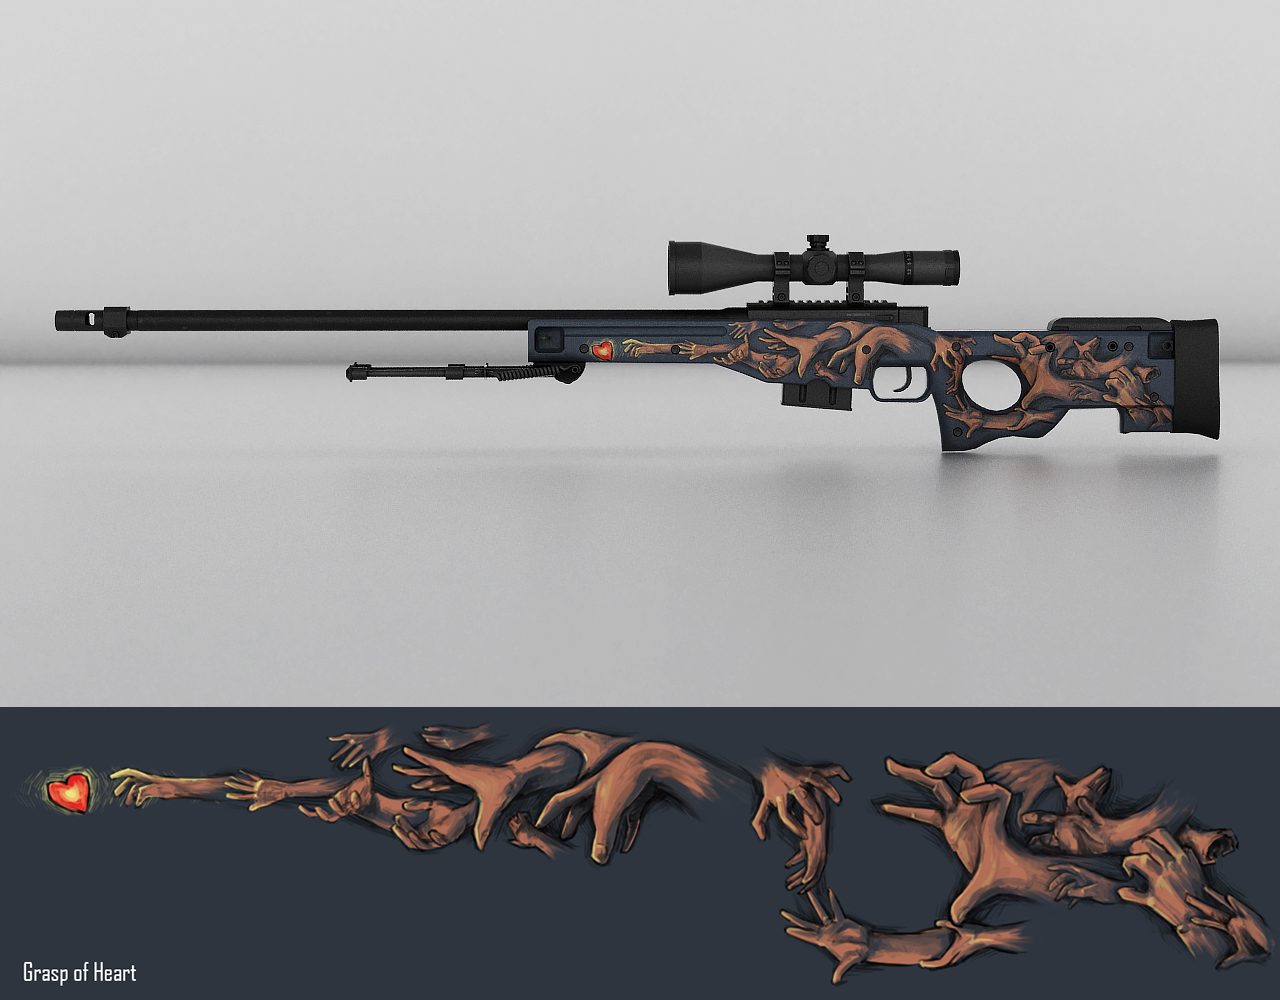 awp___grasp_by_silver_fate-d96st69